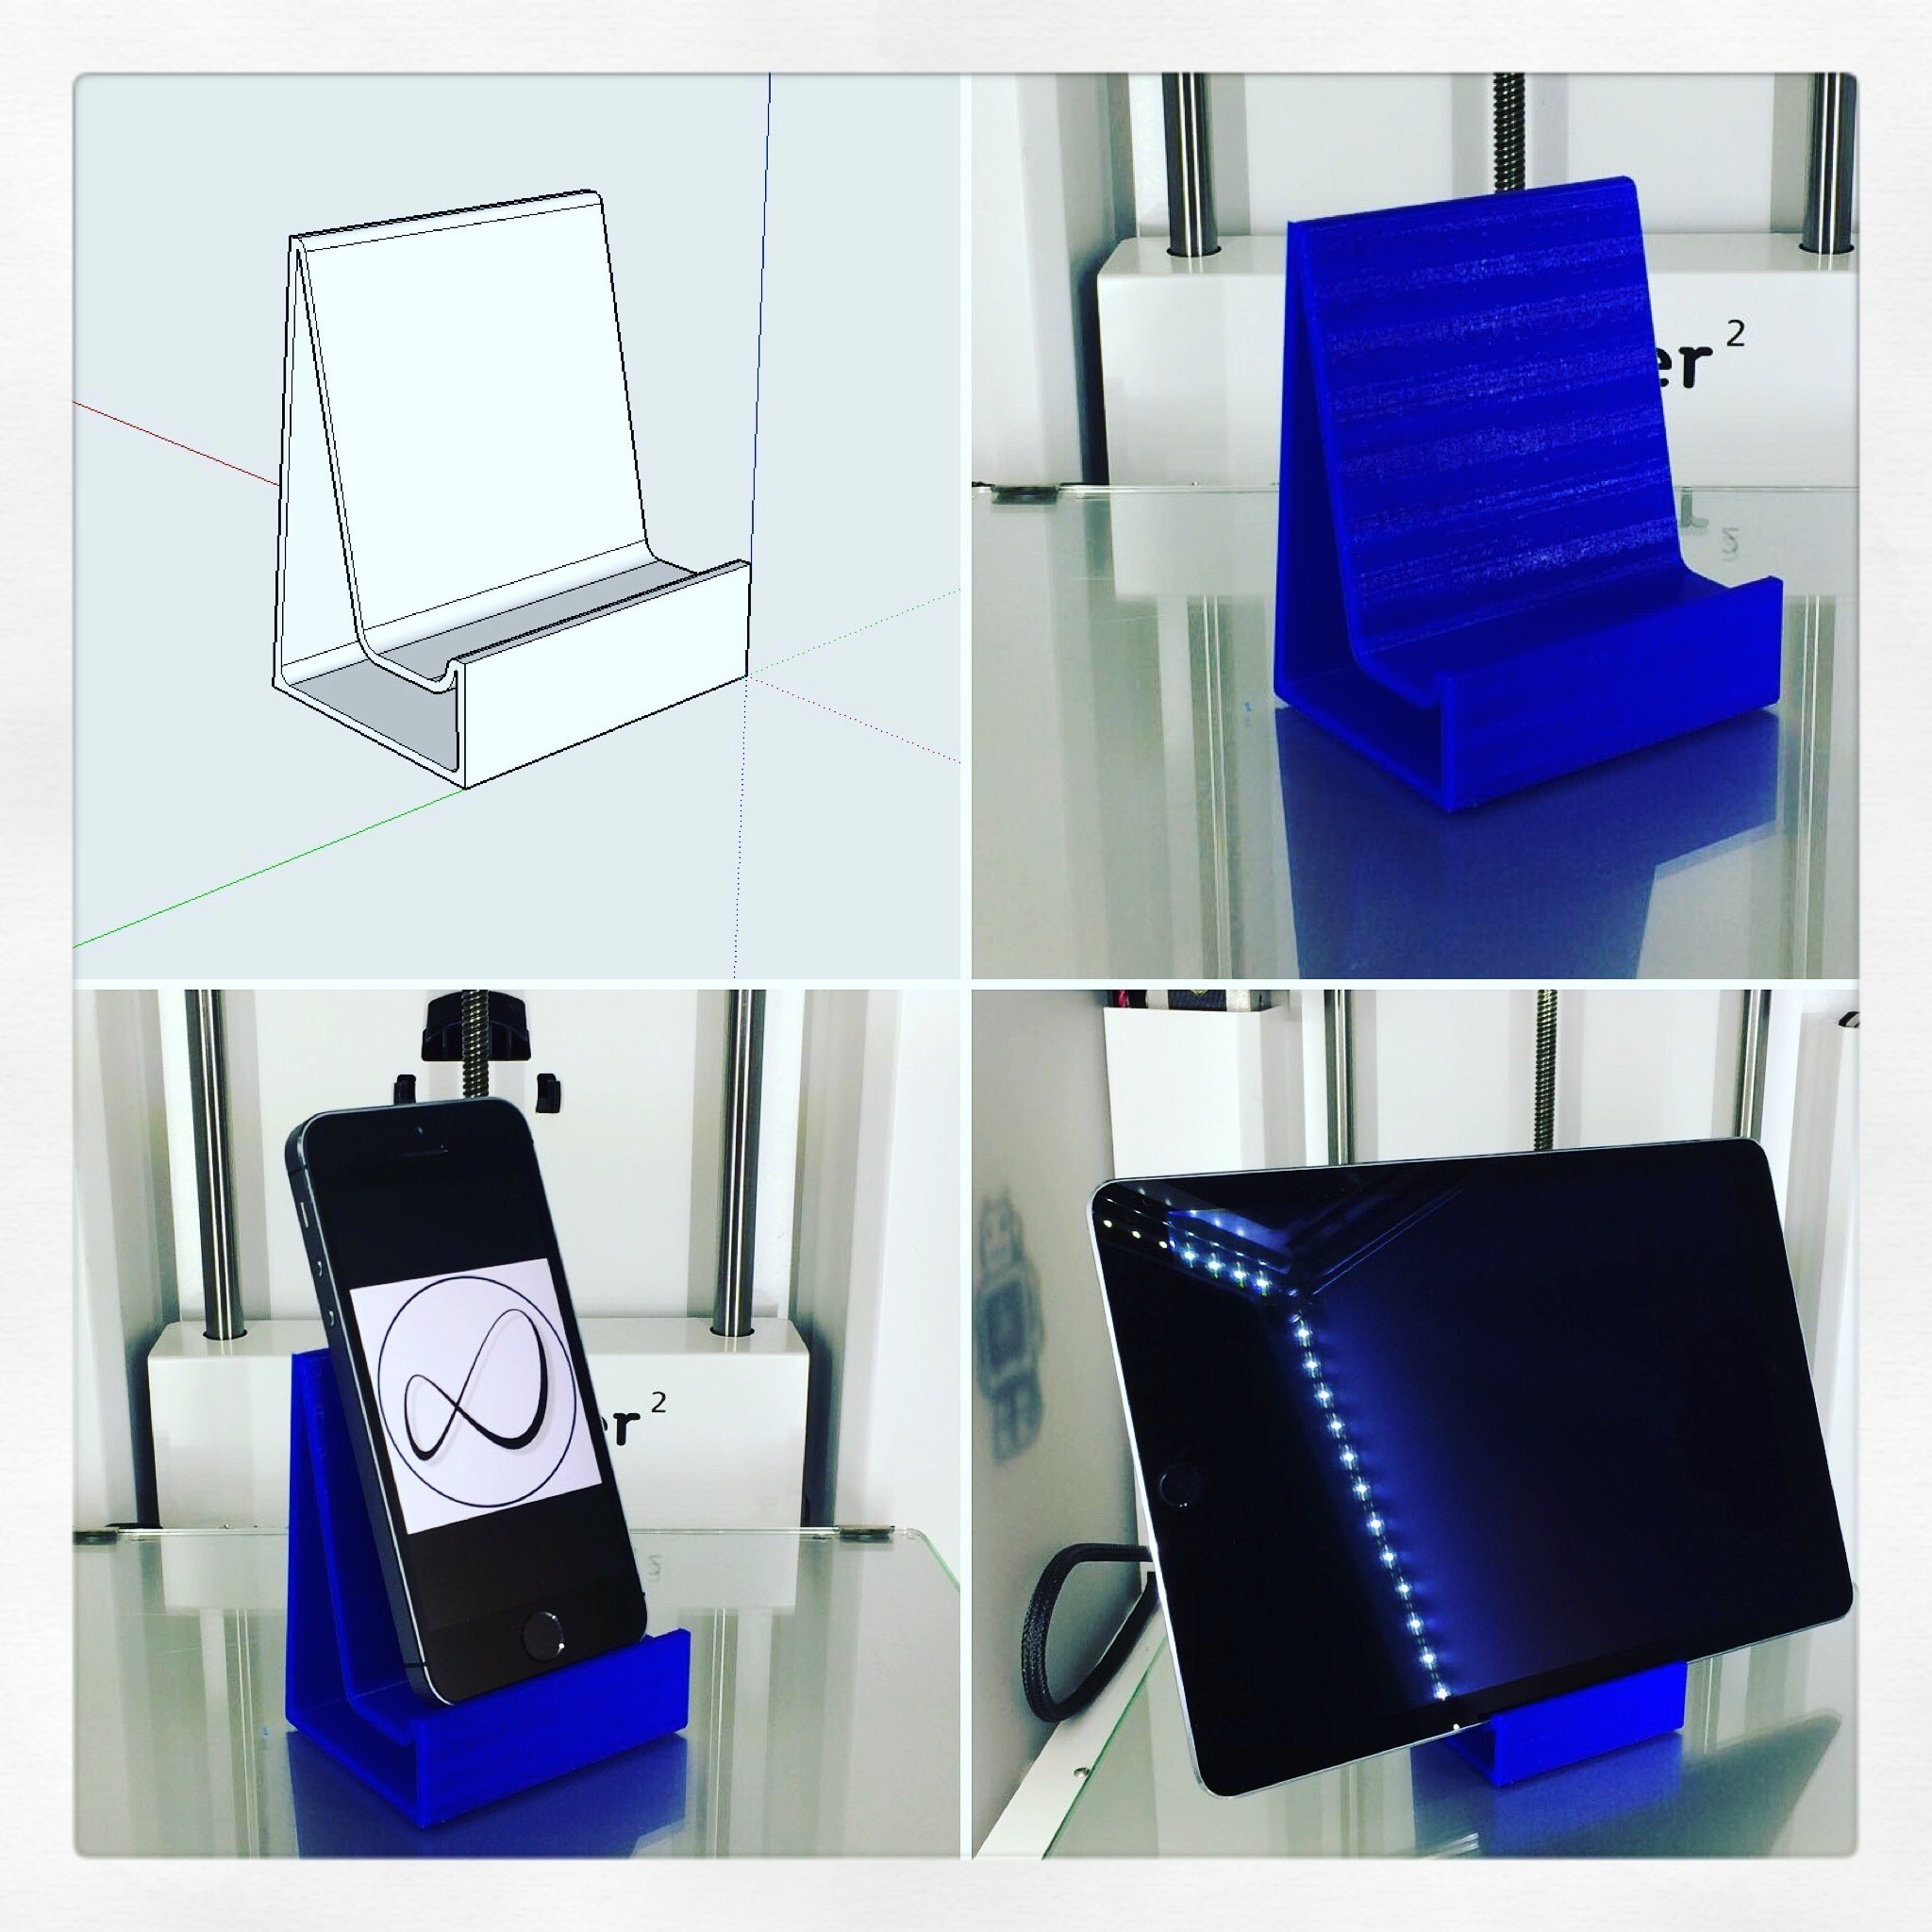 IMG_1942.JPG Download free STL file Universal Stand for Mobile Phone and Tablet • 3D print object, OTTO3D